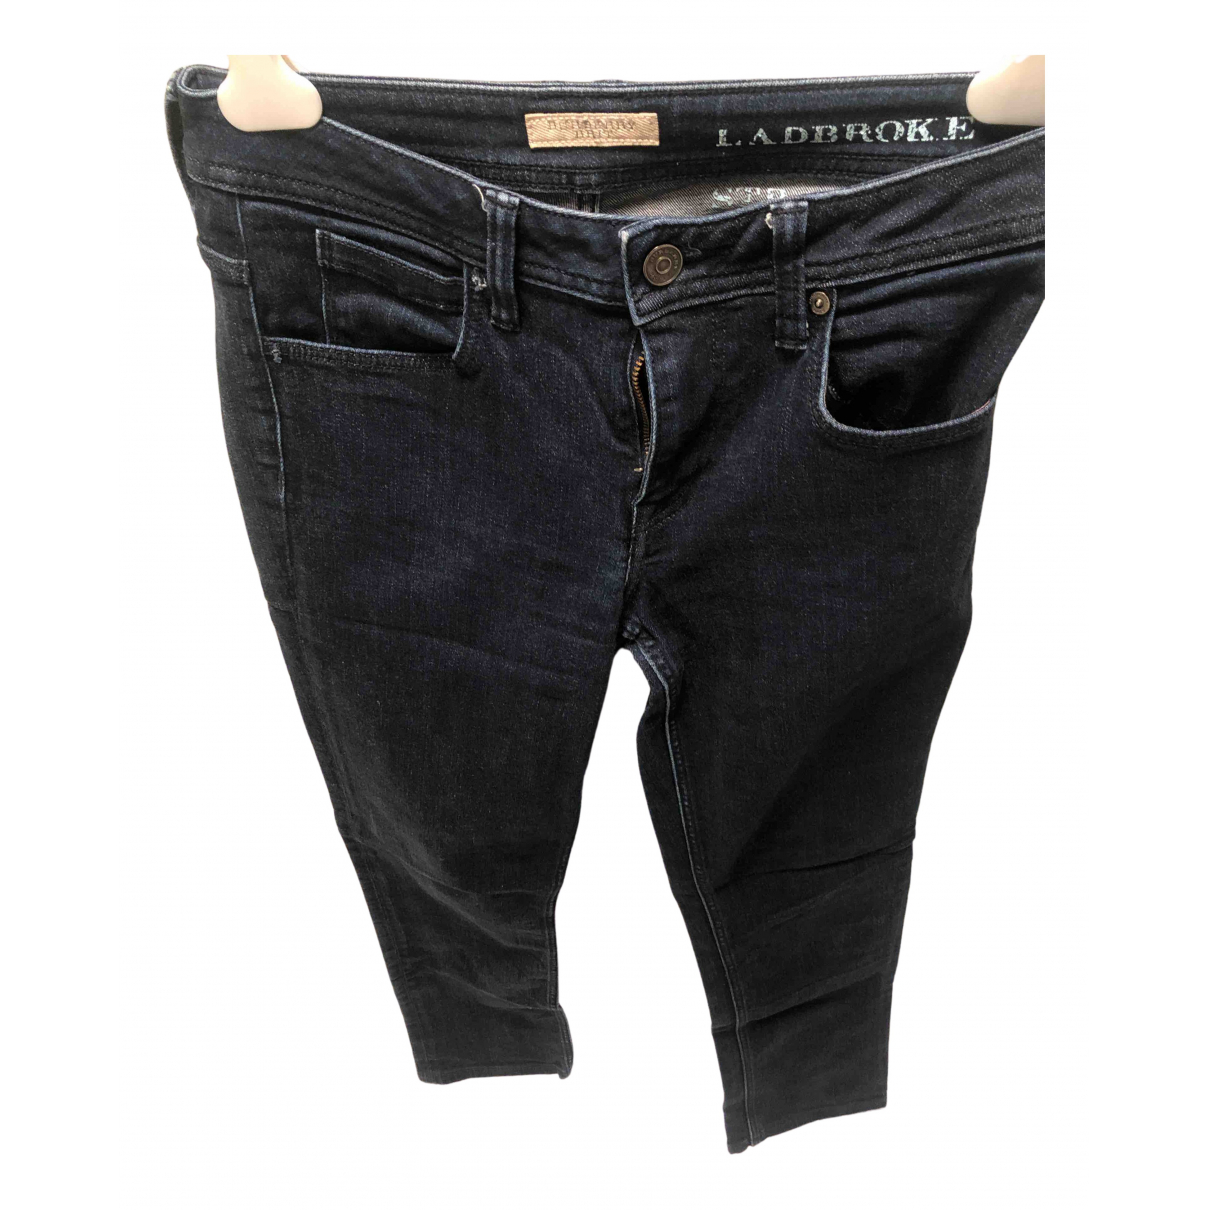 Burberry N Blue Cotton - elasthane Jeans for Women 25 US